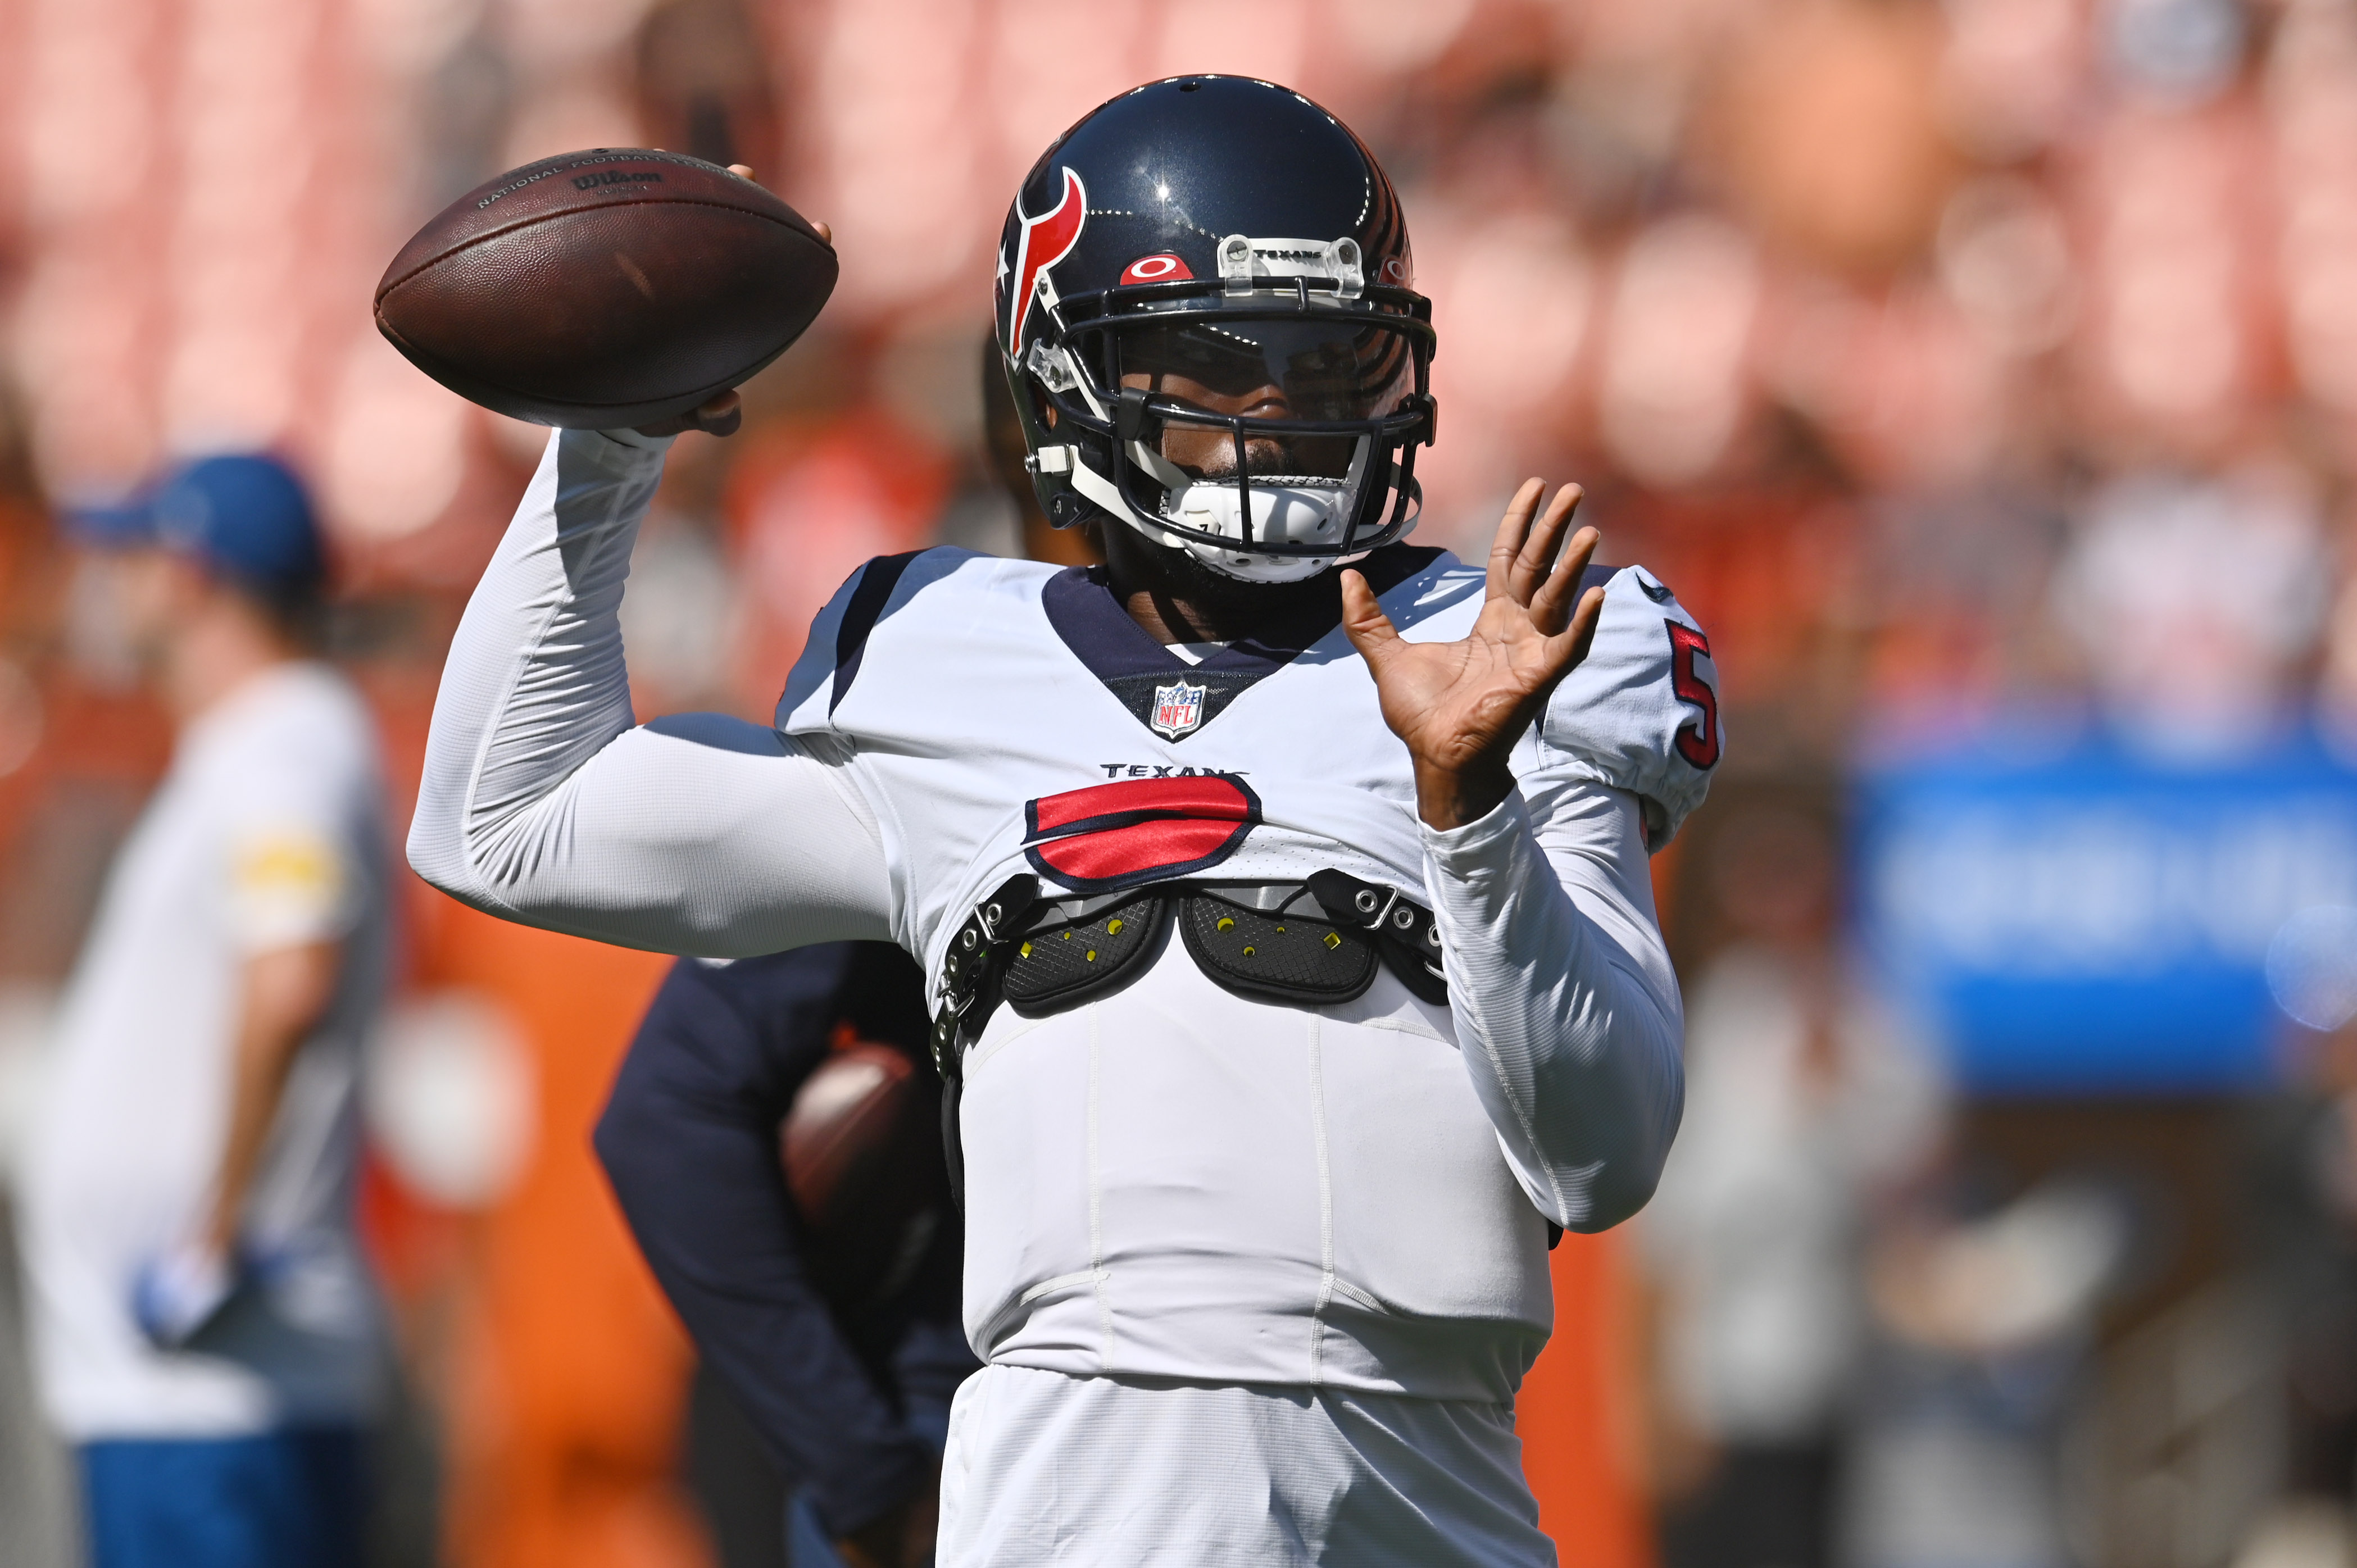 Houston Texans quarterback Tyrod Taylor (5) throws a pass before the game between the Cleveland Browns and the Houston Texans at FirstEnergy Stadium.